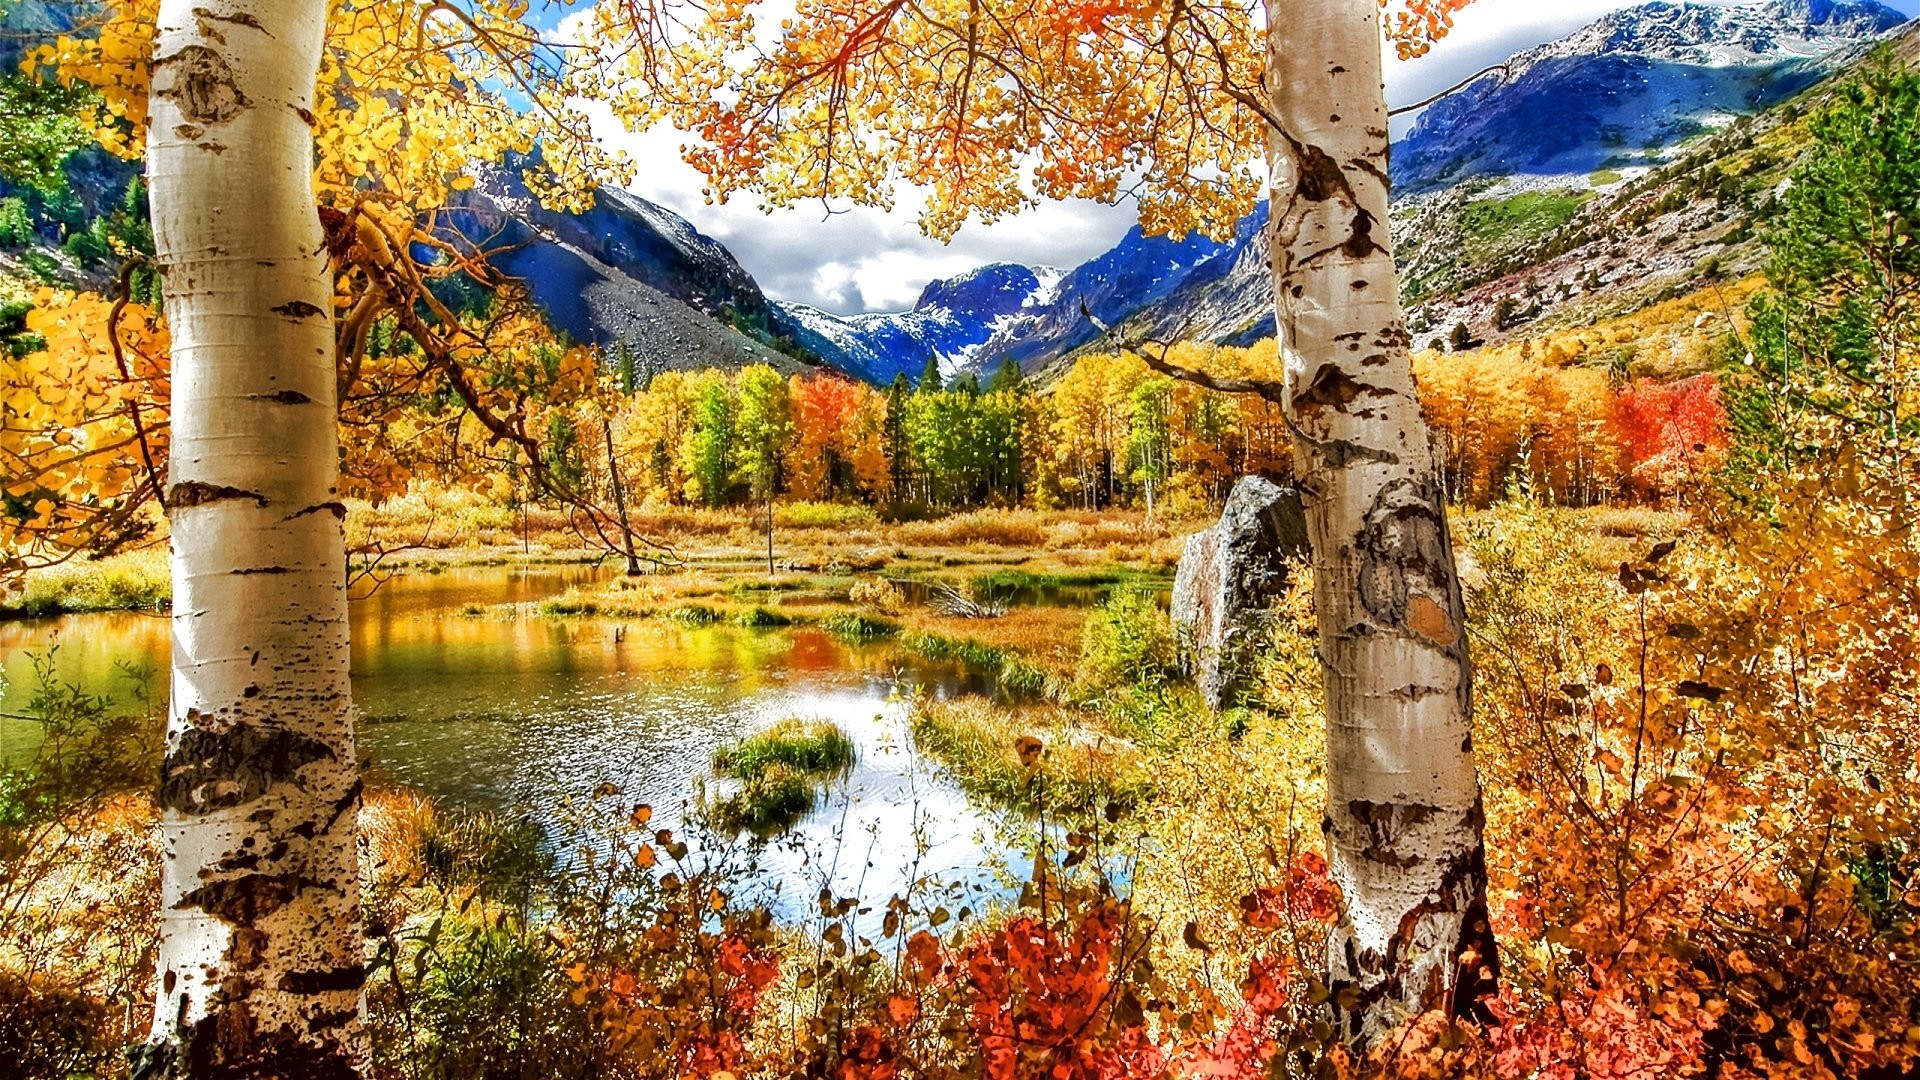 Autumn hd wallpapers 1080p 76 images - Season wallpaper ...